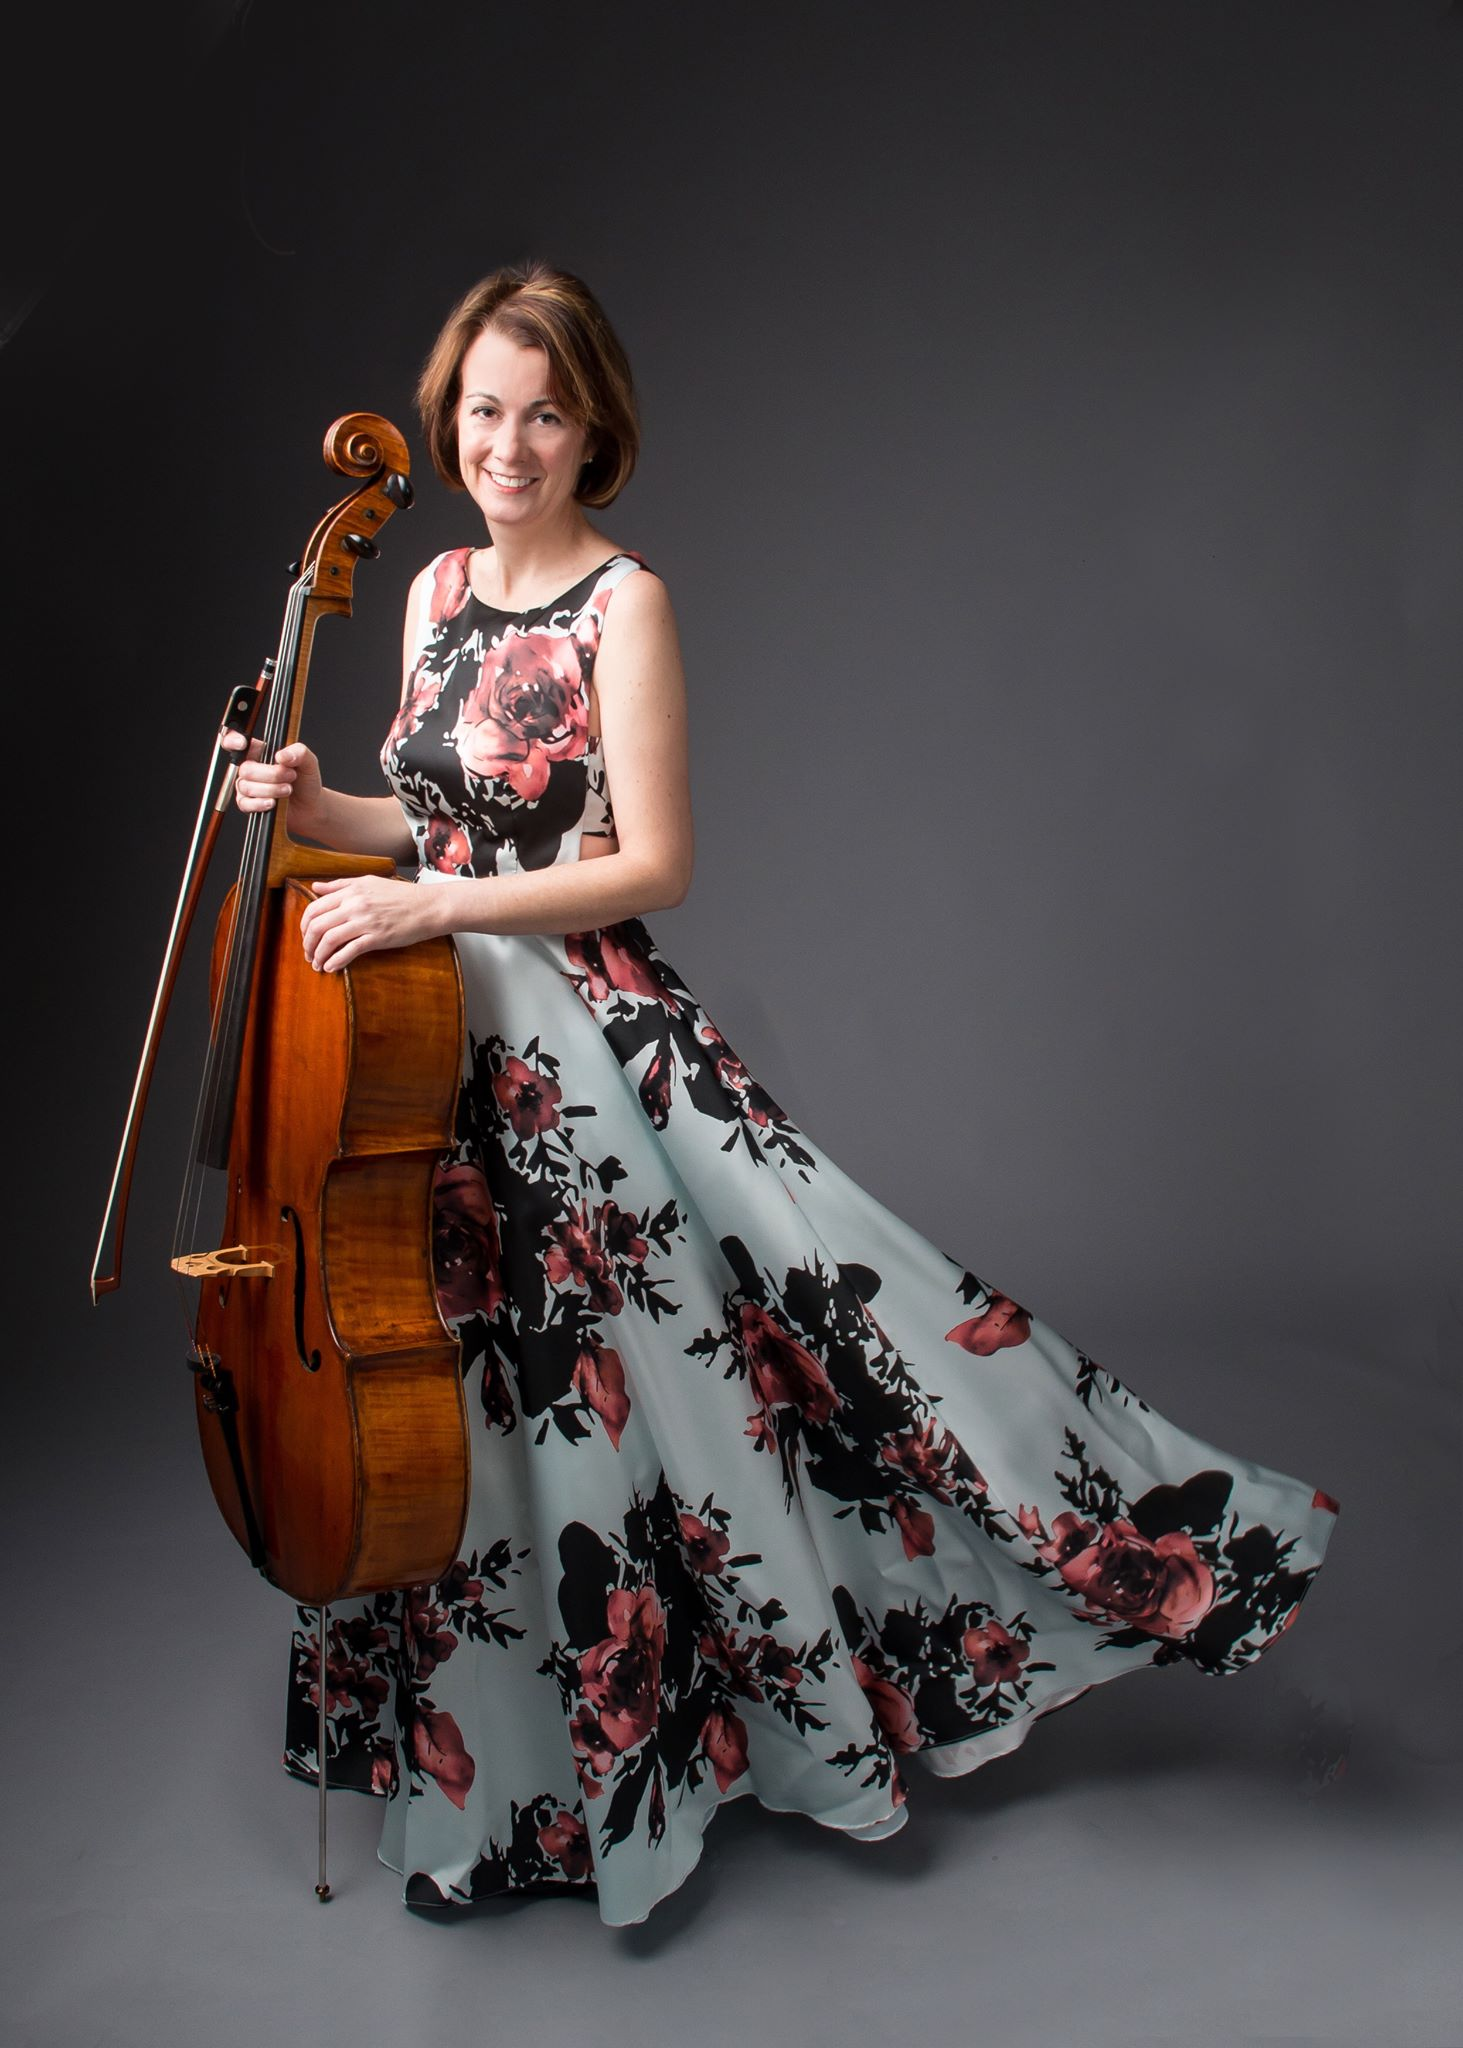 symphony orchestra musician